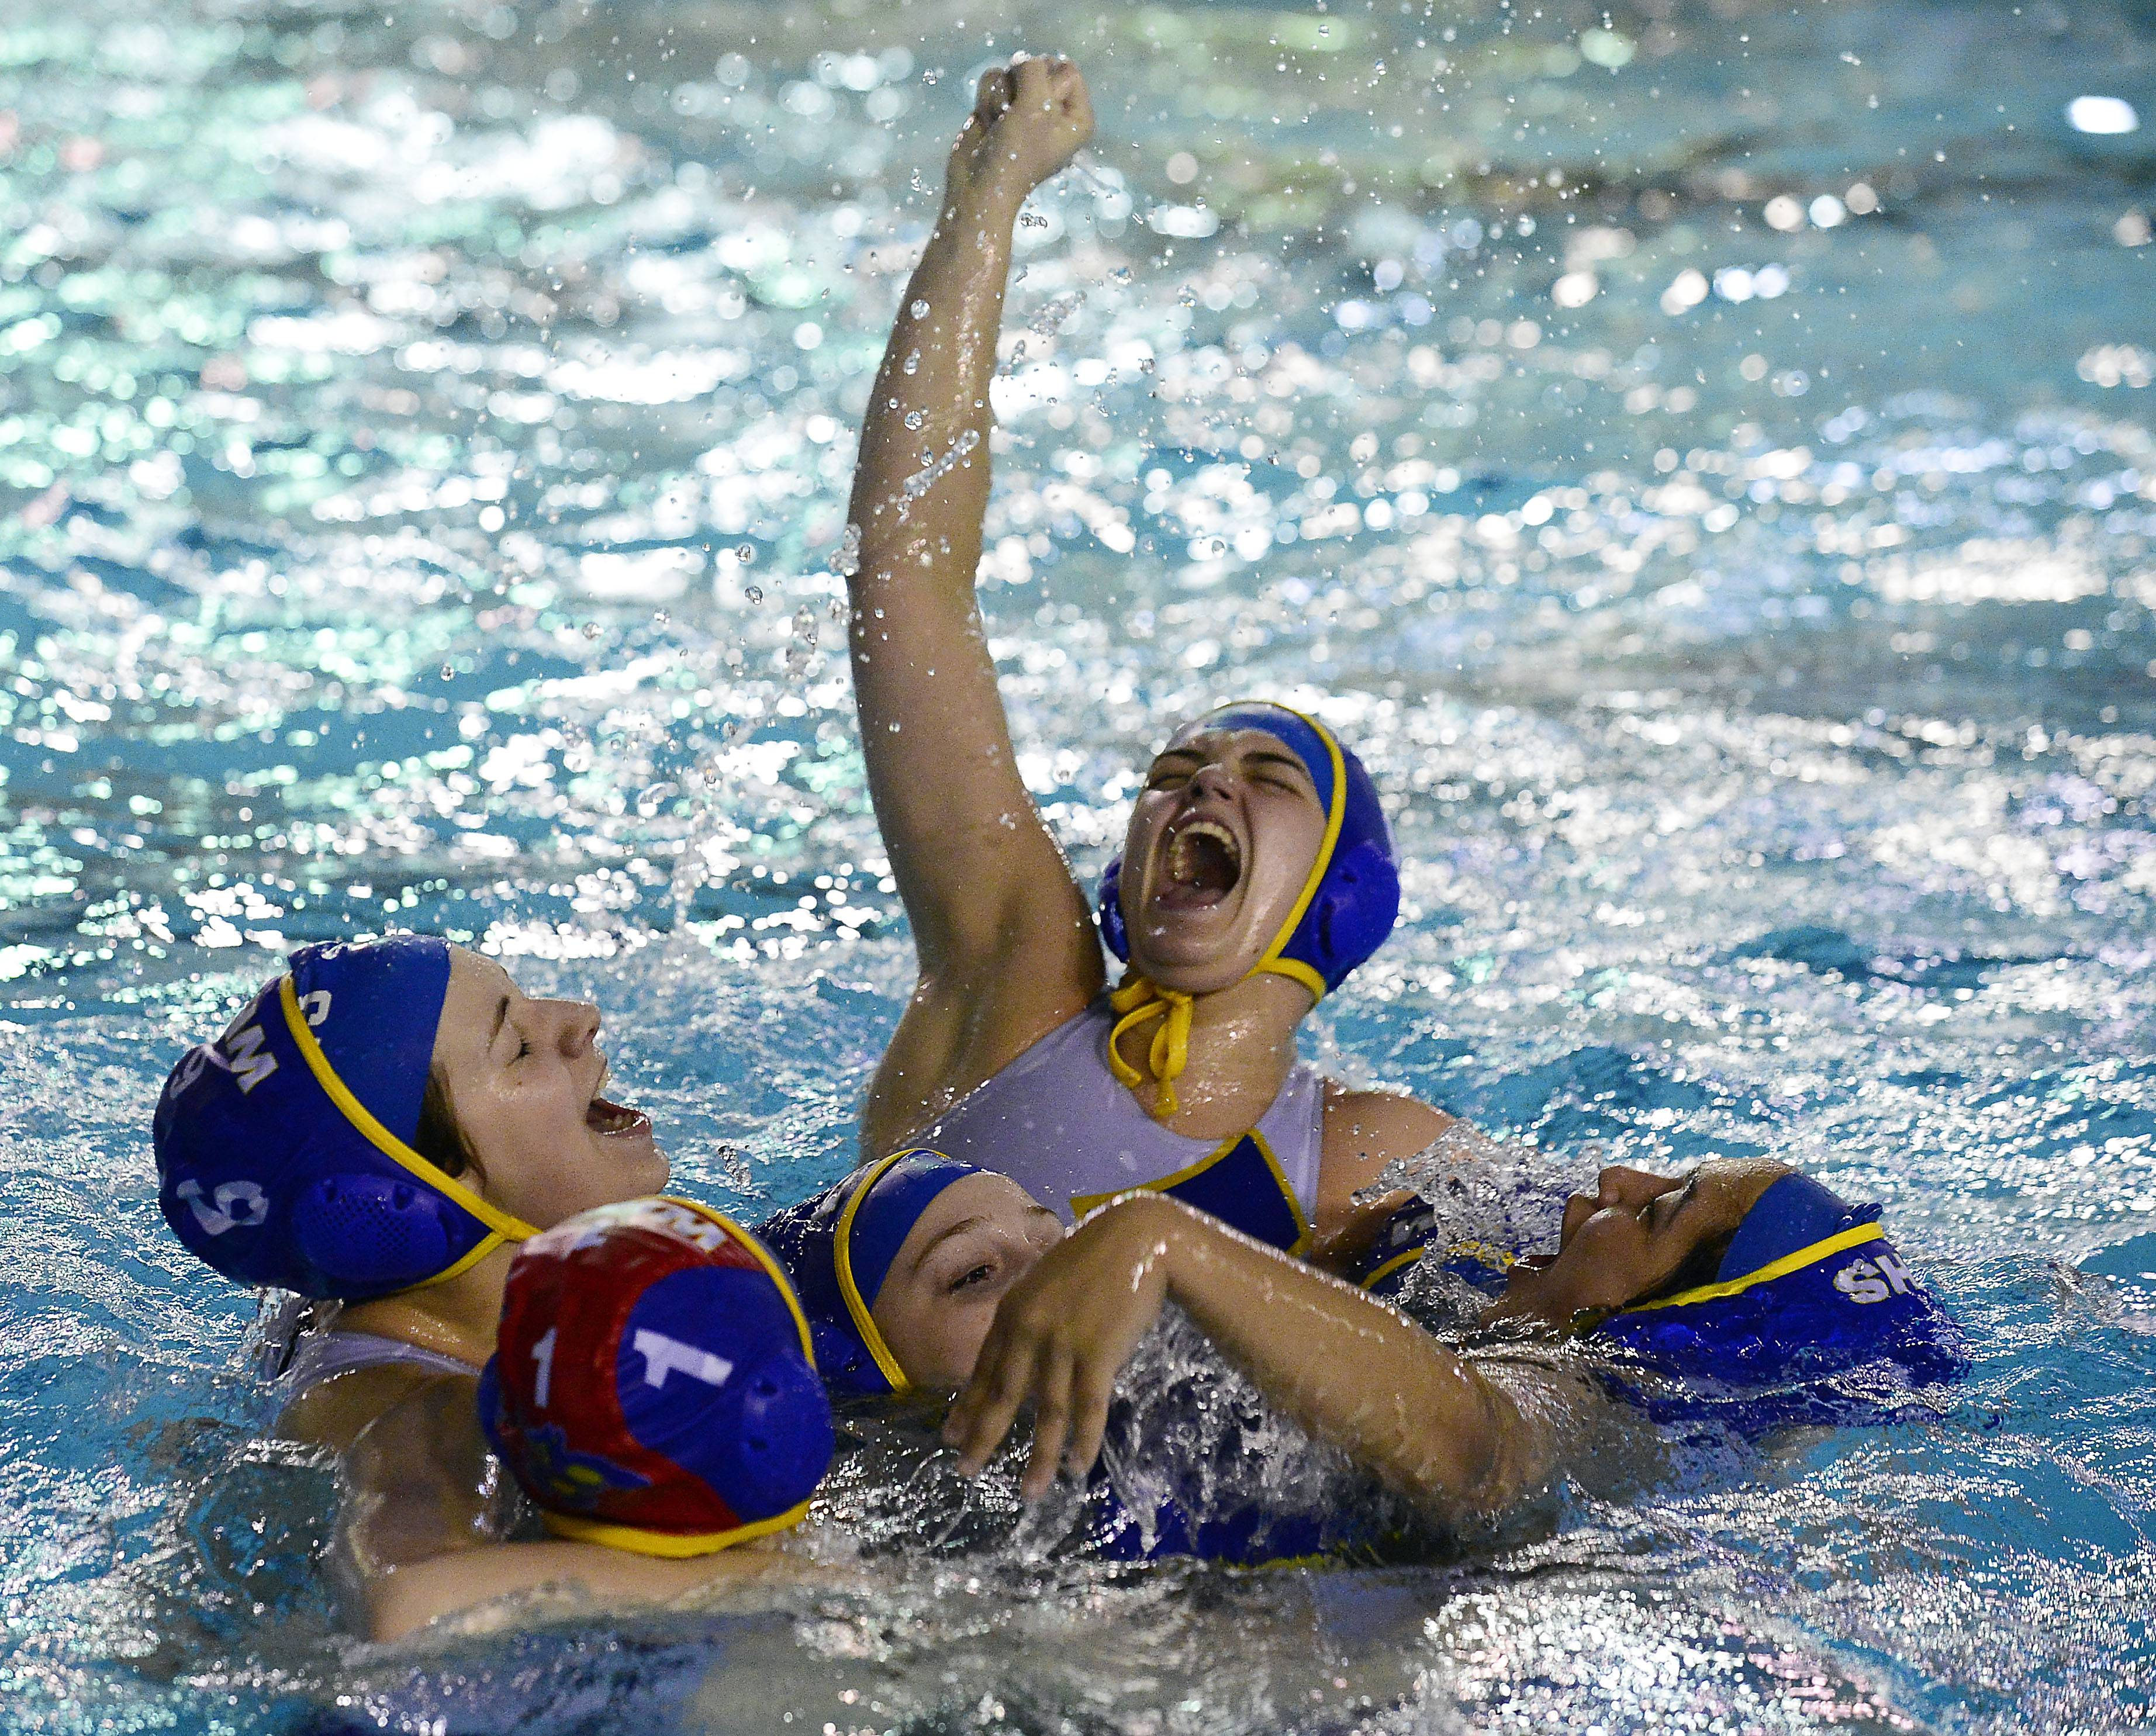 Wheeling's Theresa Godlewski, middle, and the rest of her teammates celebrate their overtime victory against Conant in the Mid-Suburban League's girls water polo championship game at Conant on Thursday.